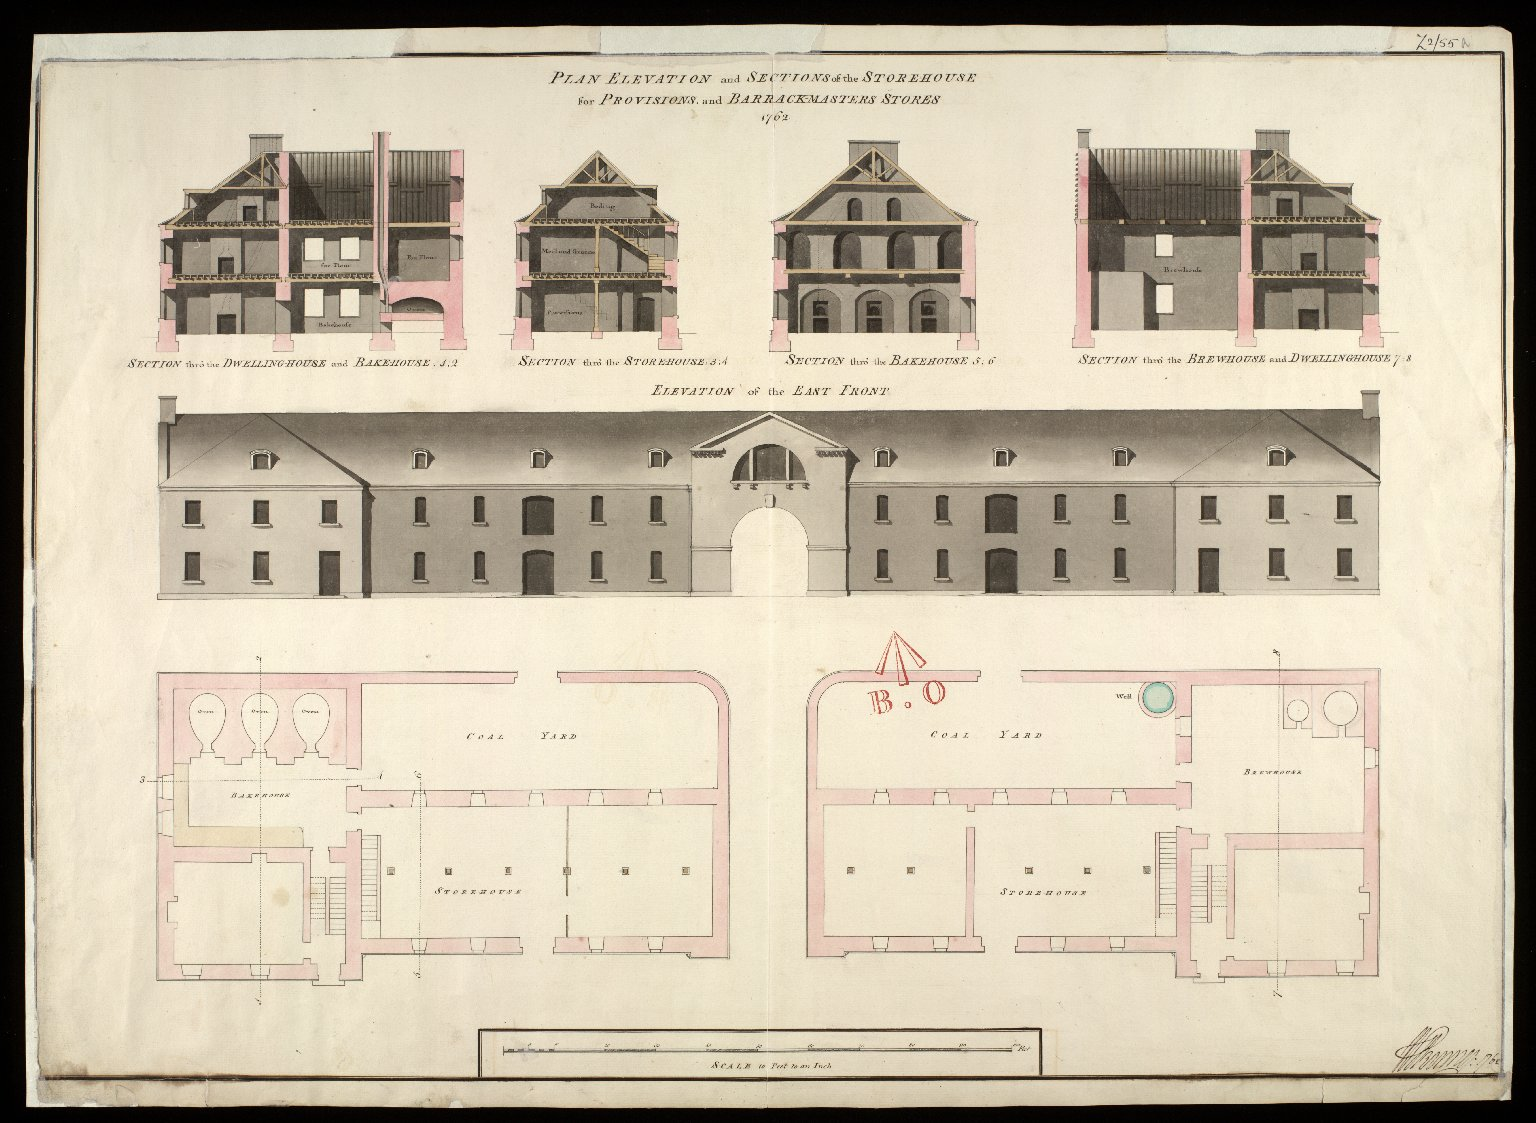 Plan elevation and sections of the store-house for provisions, and barrack-masters stores 1762 [1 of 1]